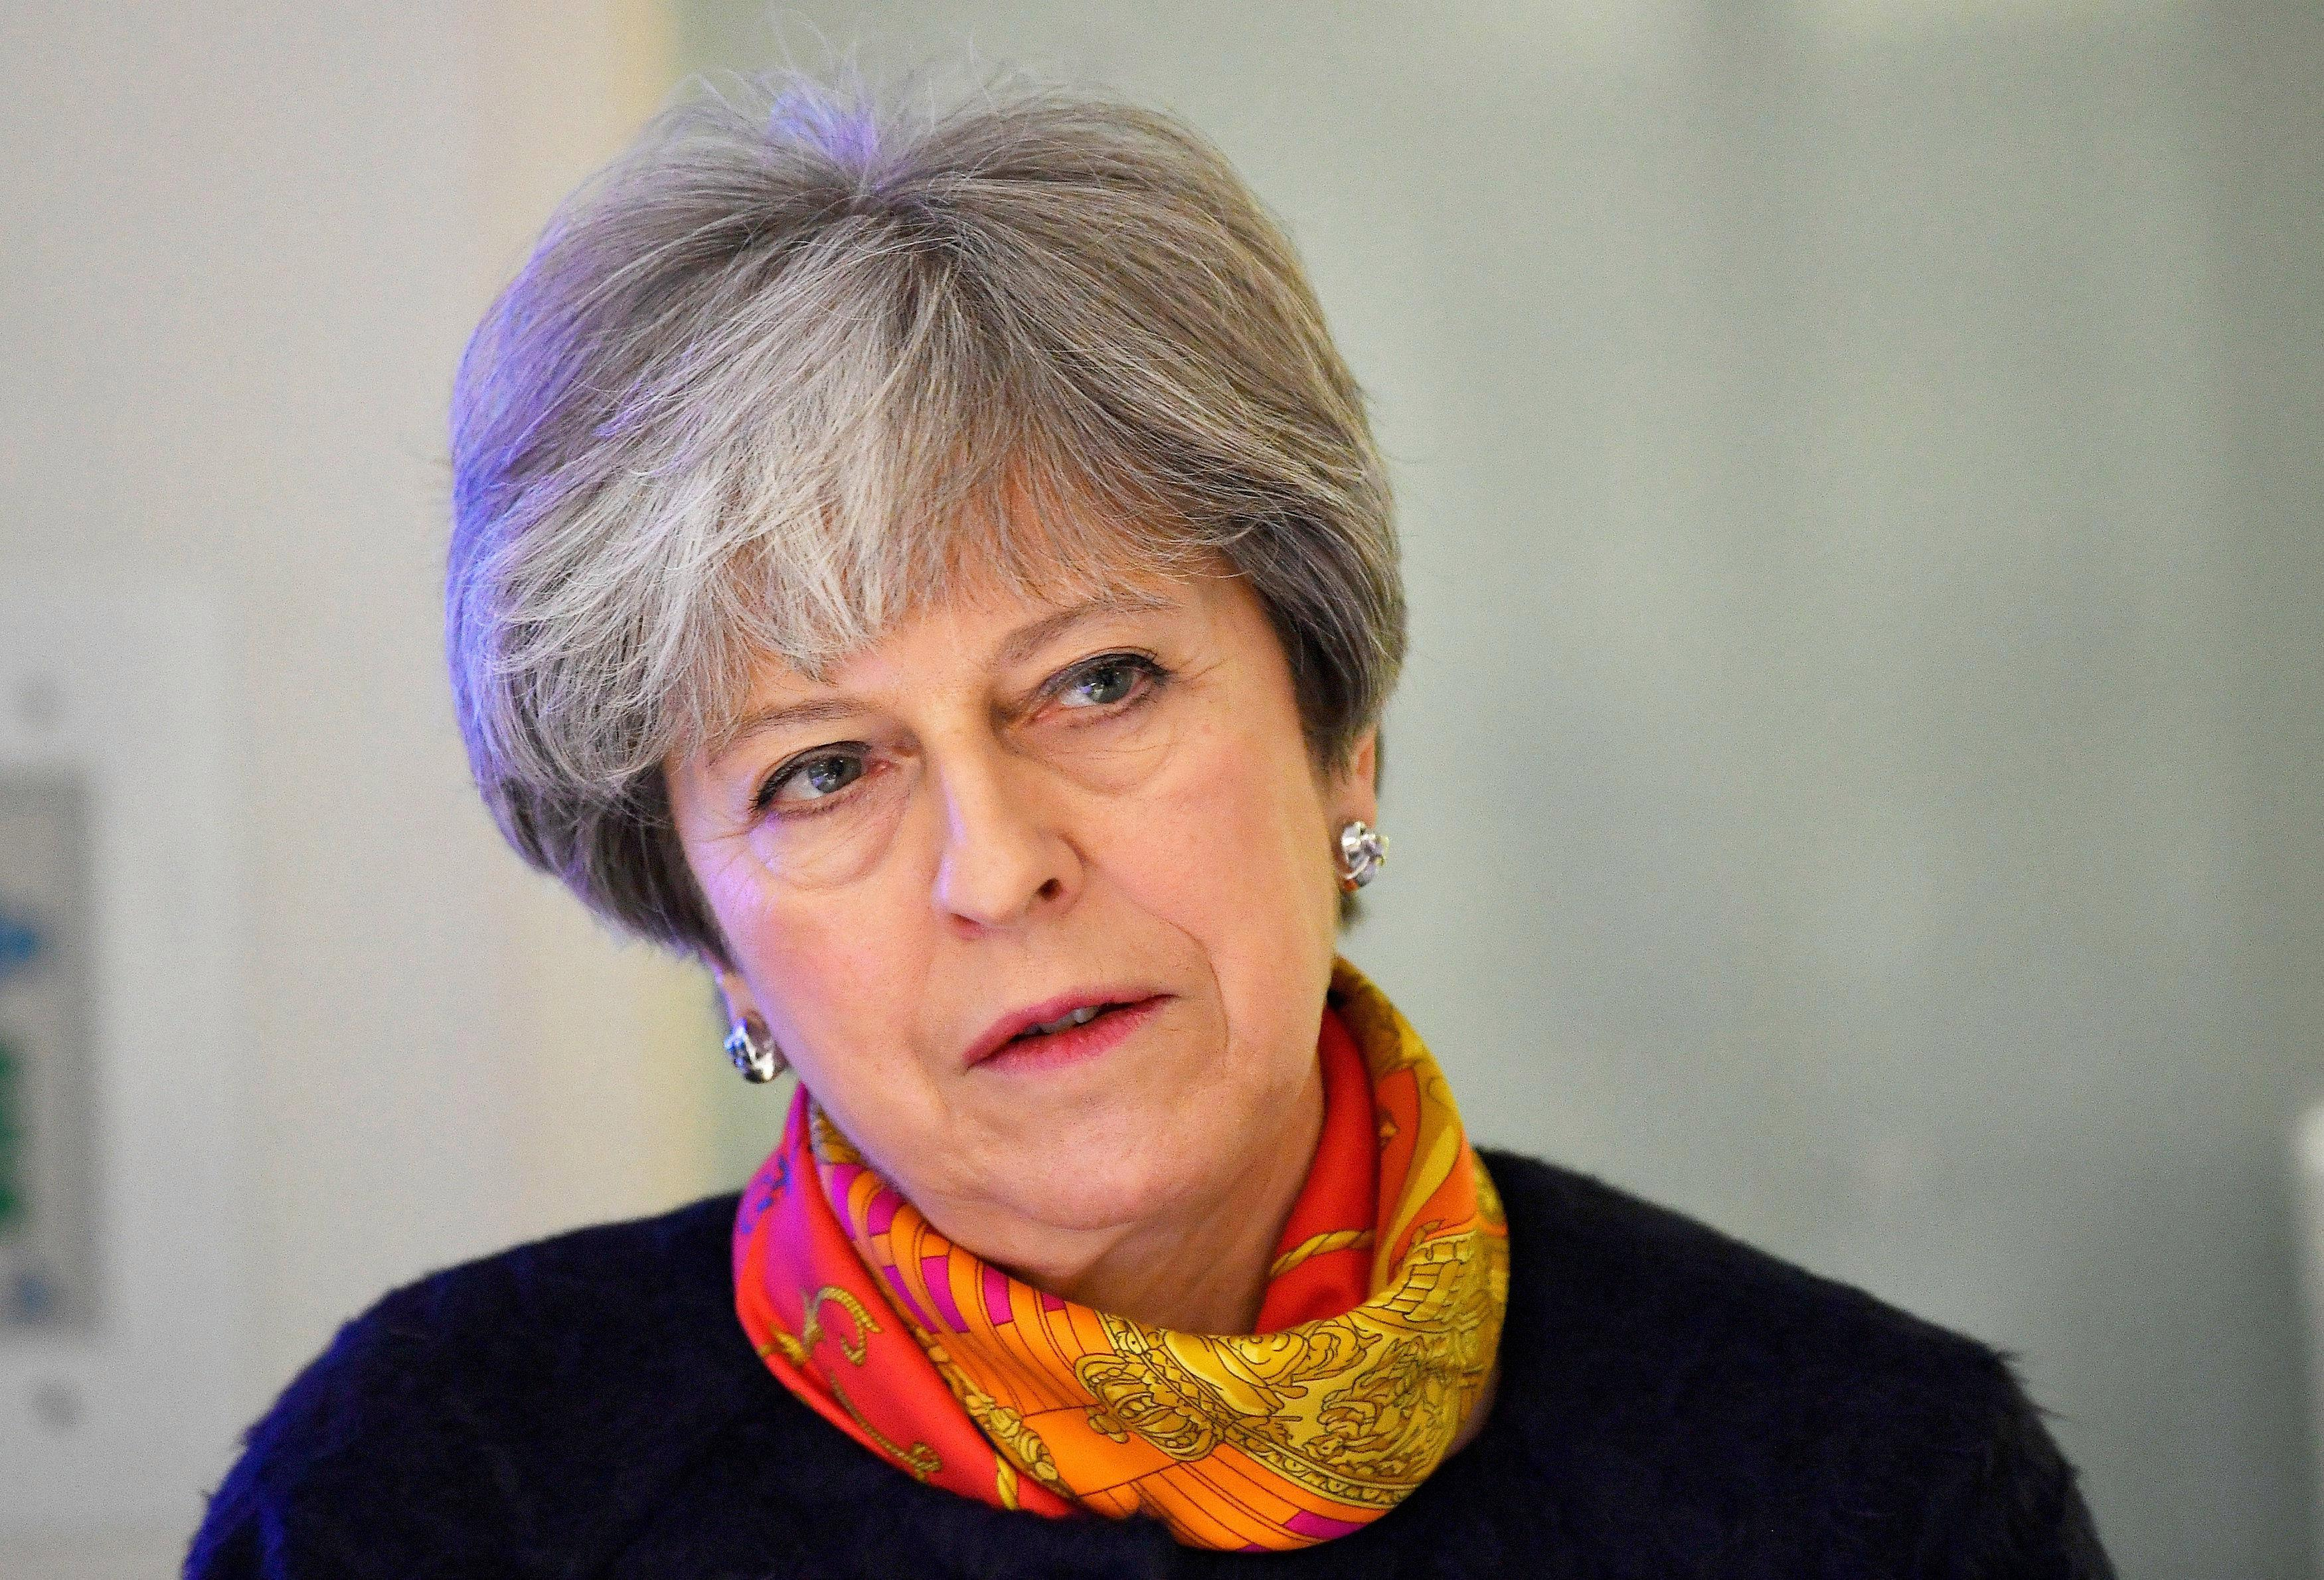 Theresa May's closest ally calls for Brexit clarity as PM is mocked by Angela Merkel over muddled negotiations